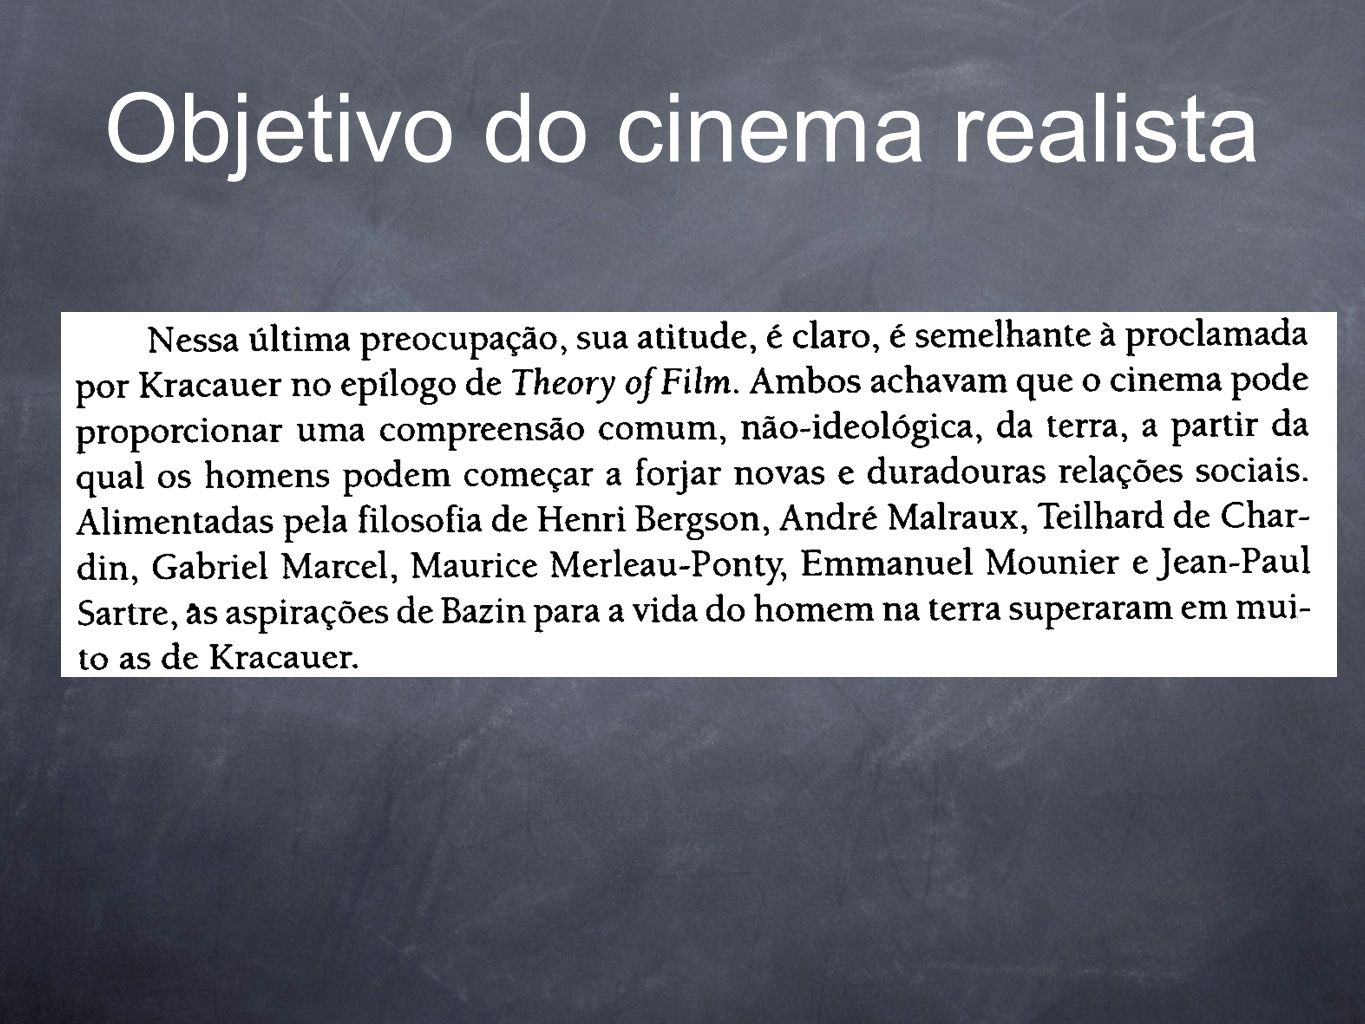 Objetivo do cinema realista